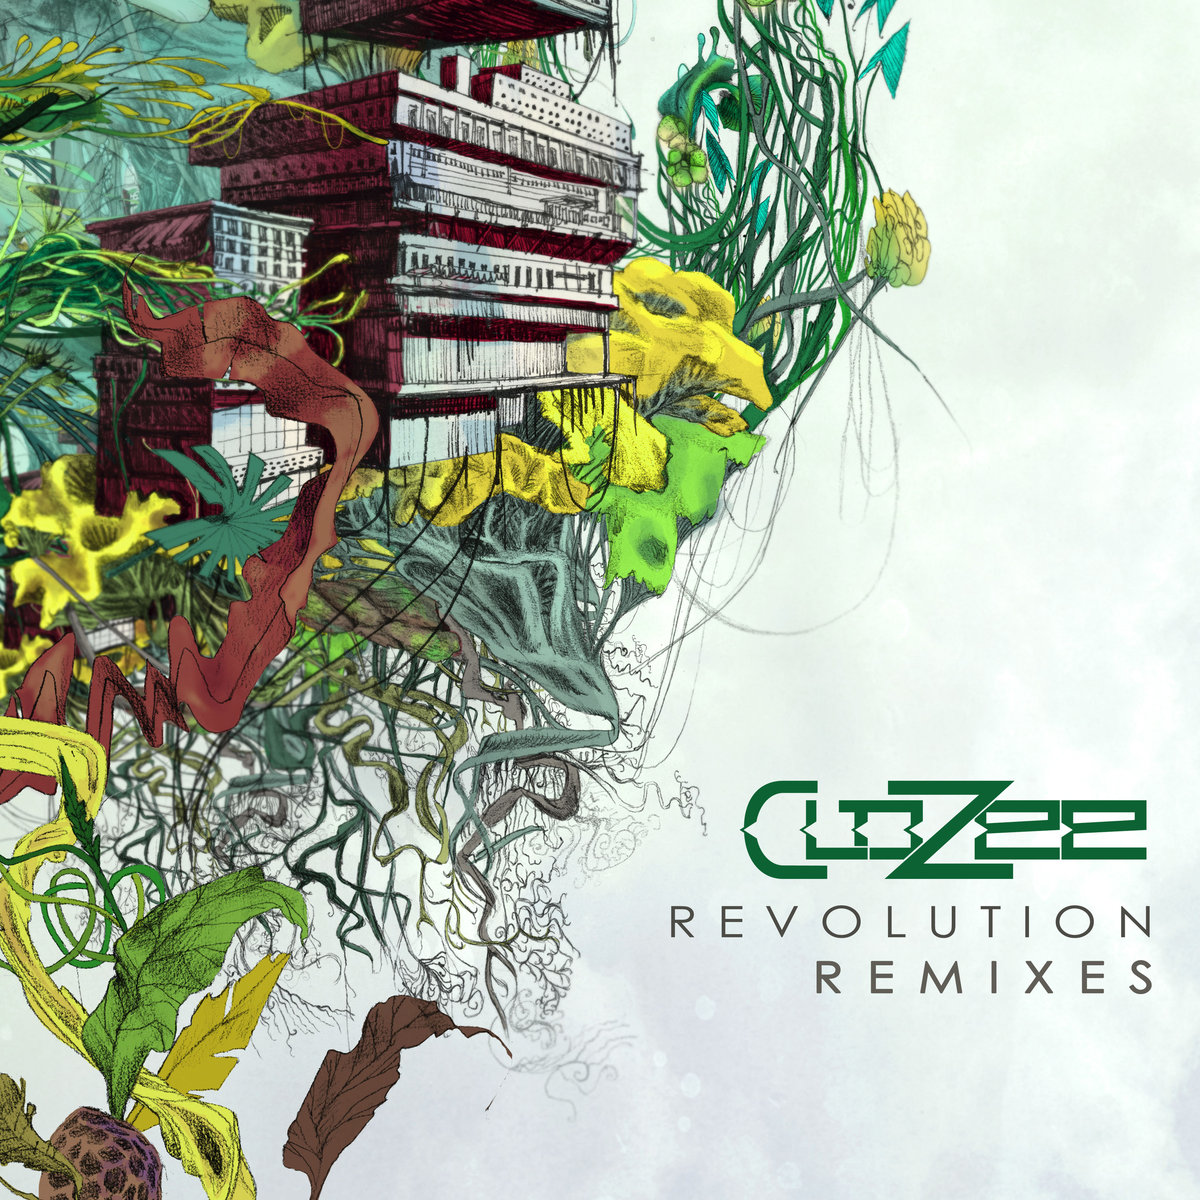 CloZee - Revolution (Sixis Remix) @ 'Revolution Remixes' album (chill, downtempo)